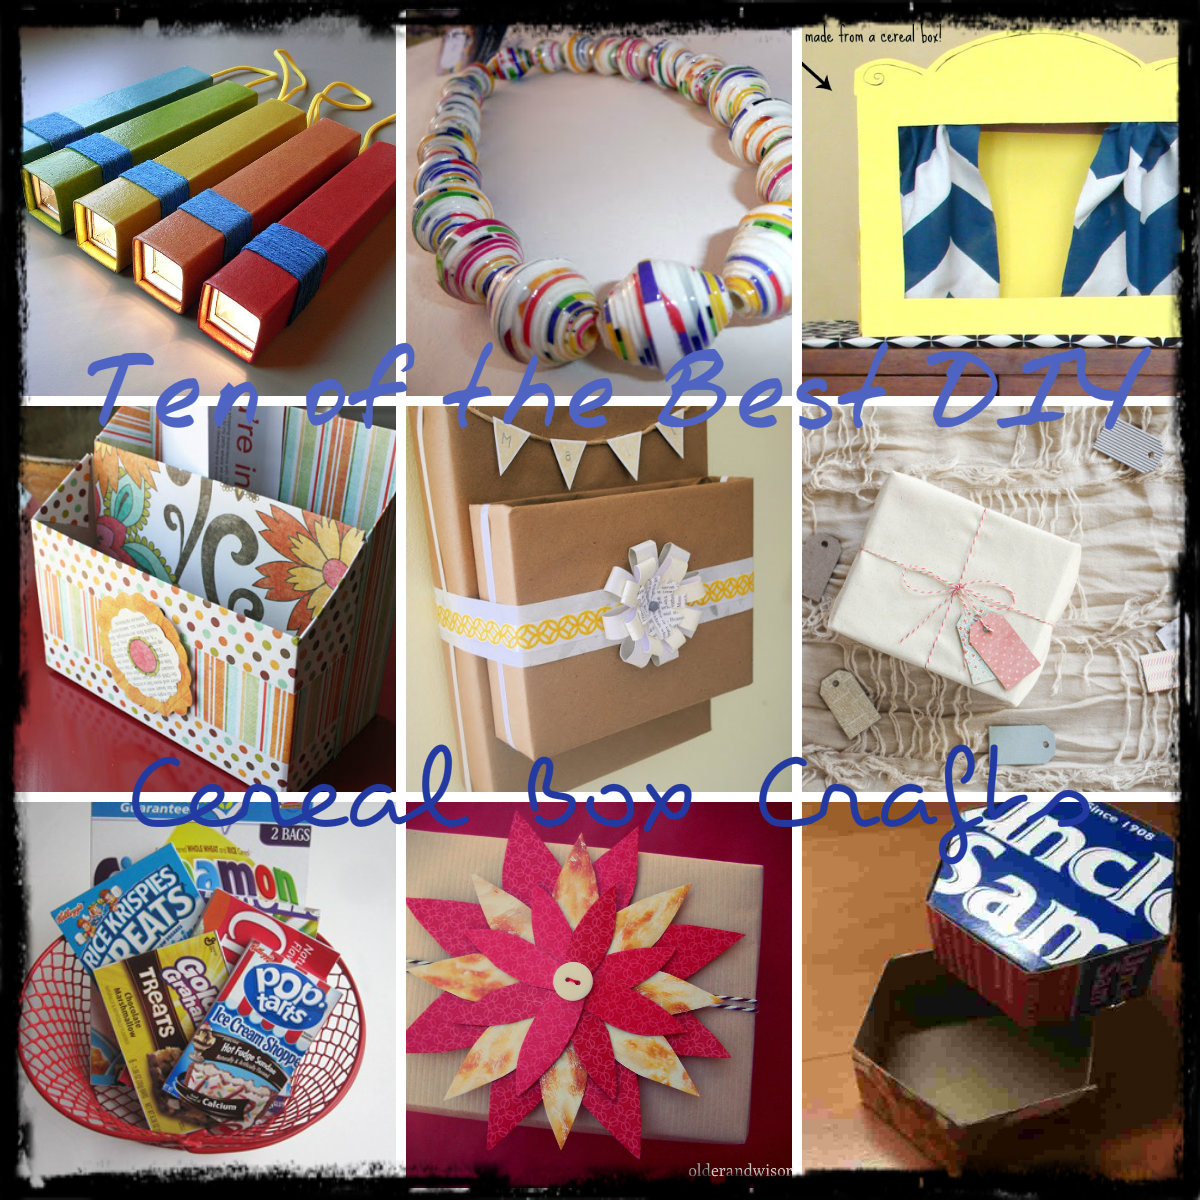 31 Things You Can Make Out Of Cereal Boxes. Cover cereal boxes with pretty fabrics, add a strip of cotton twill tape and labels, and stack them on the wall for a nifty organizer.